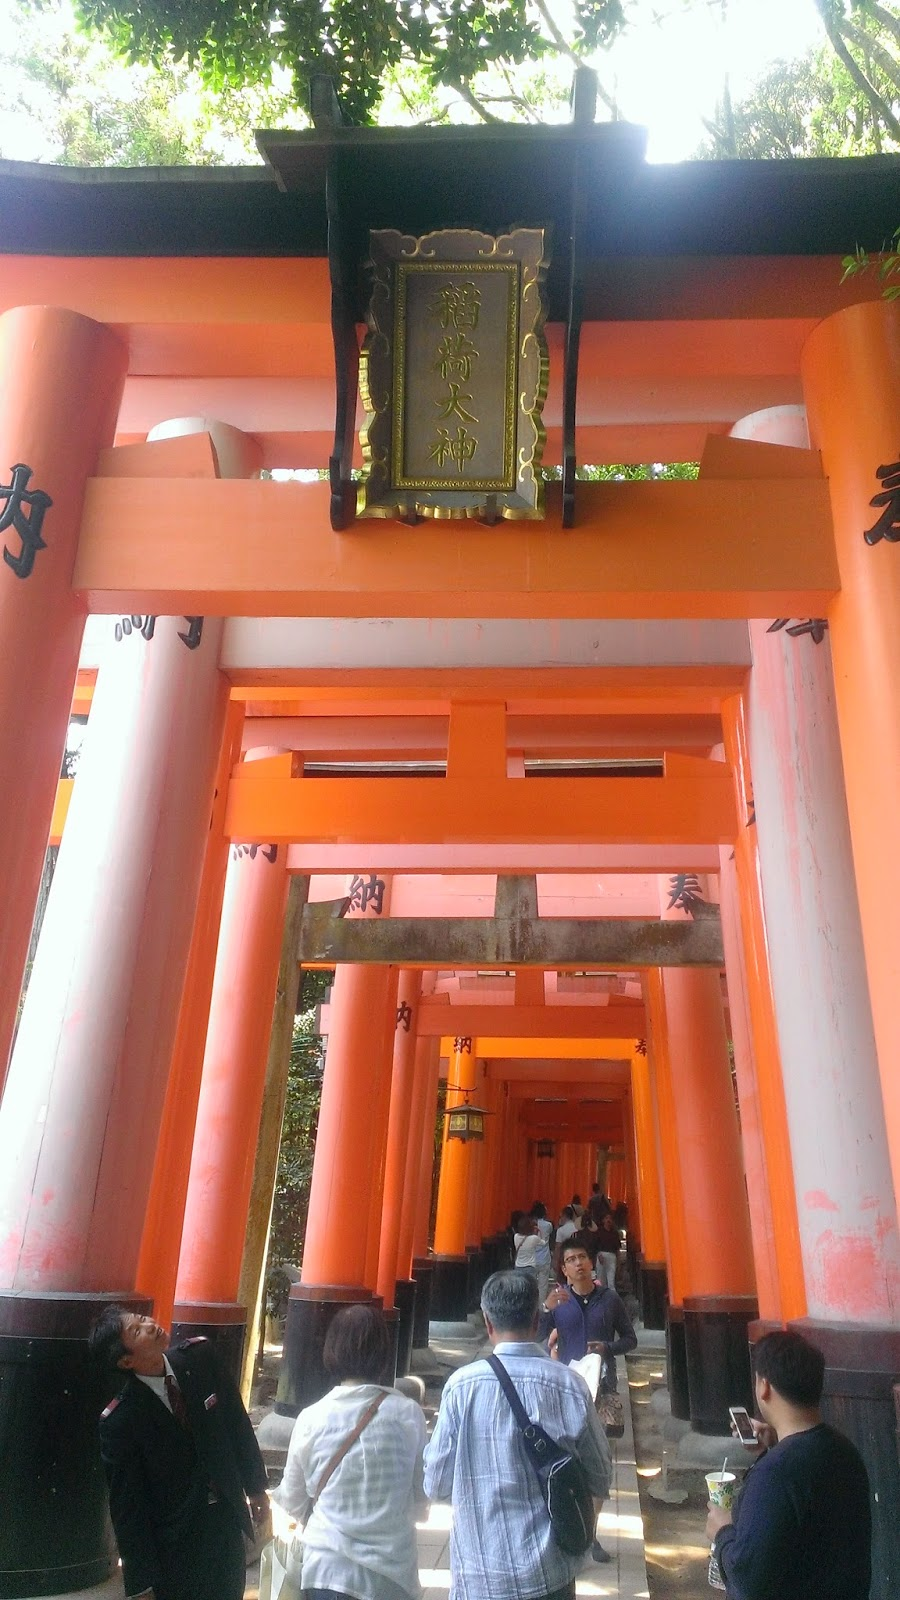 Some of the Senbon Torii